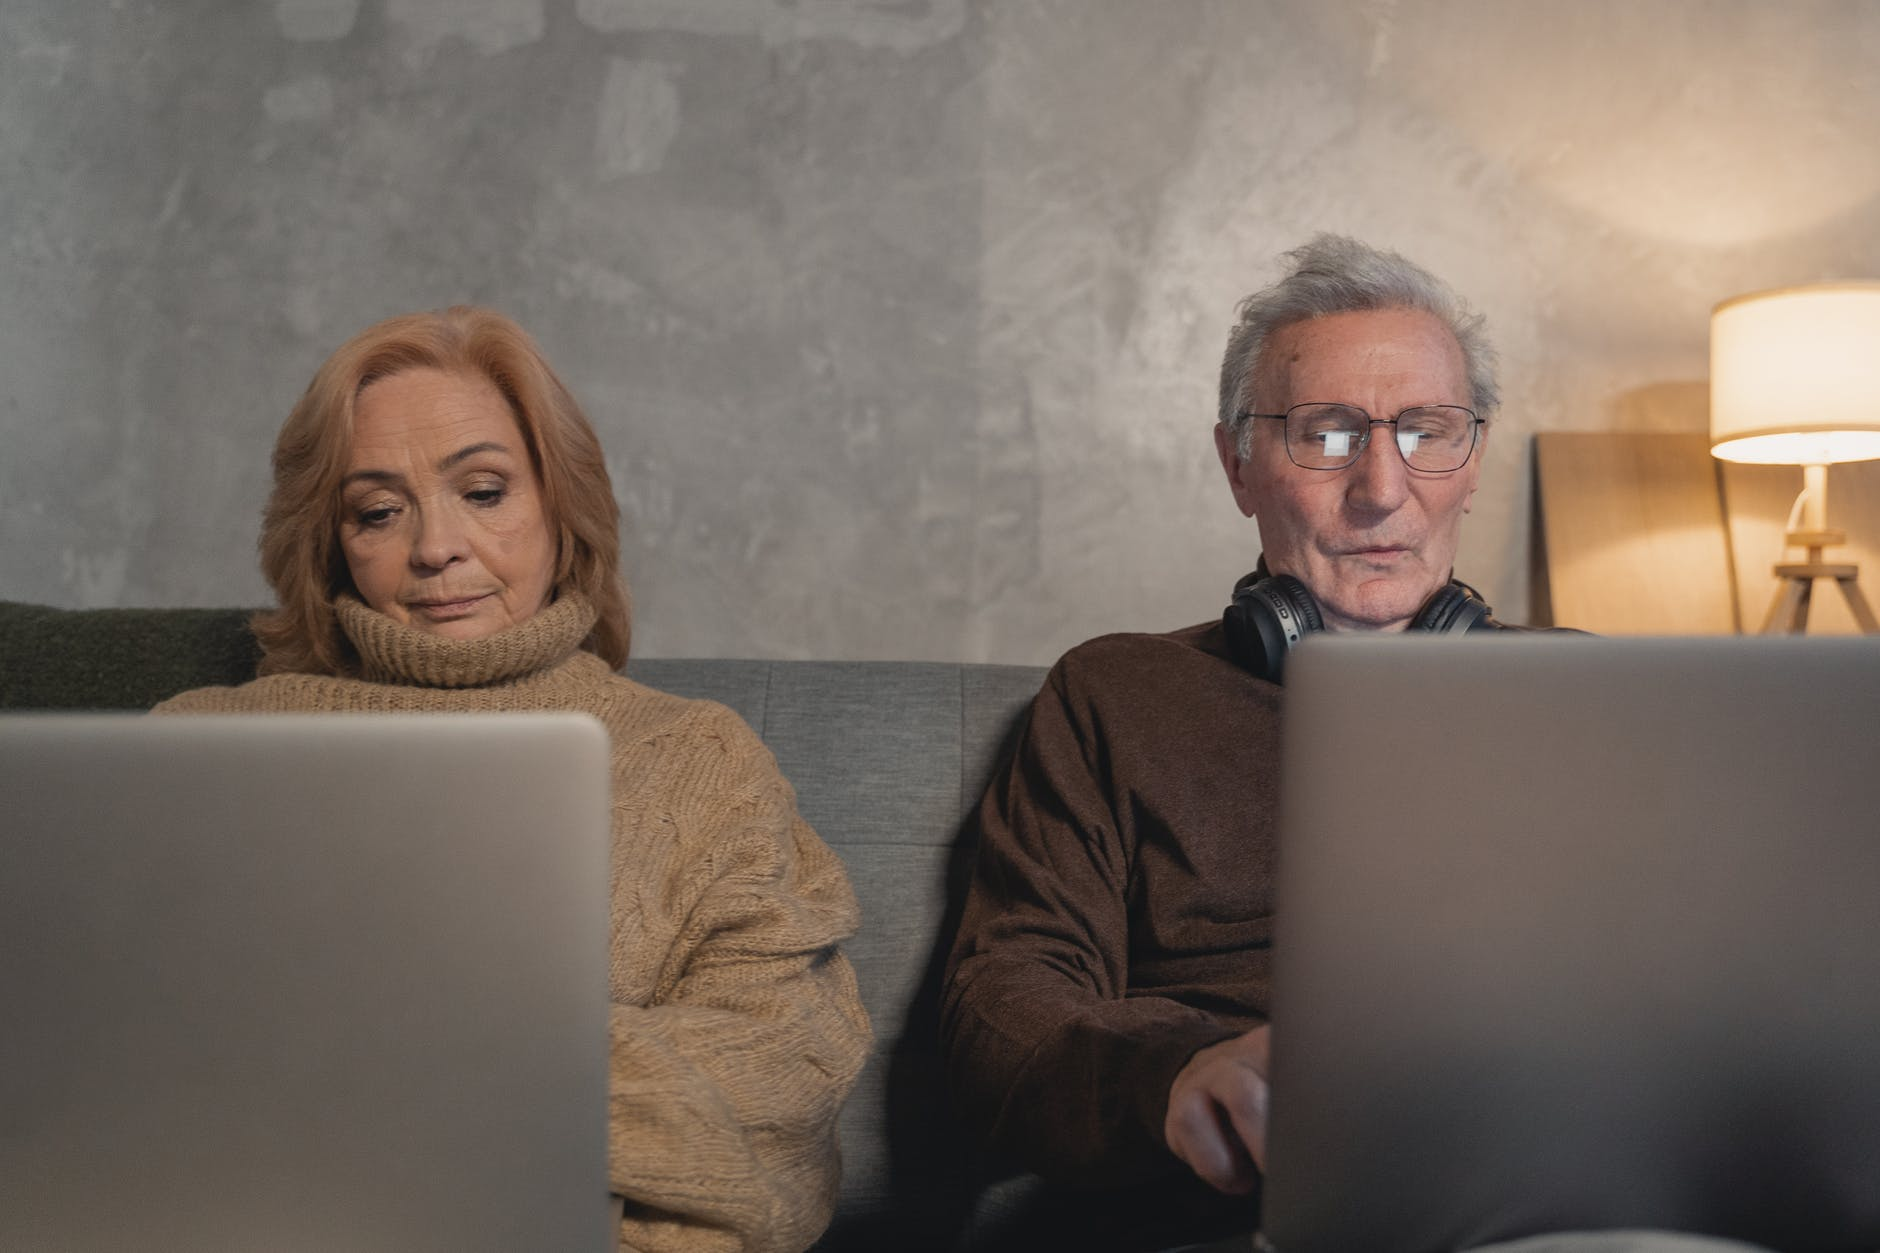 two older people on couch, white